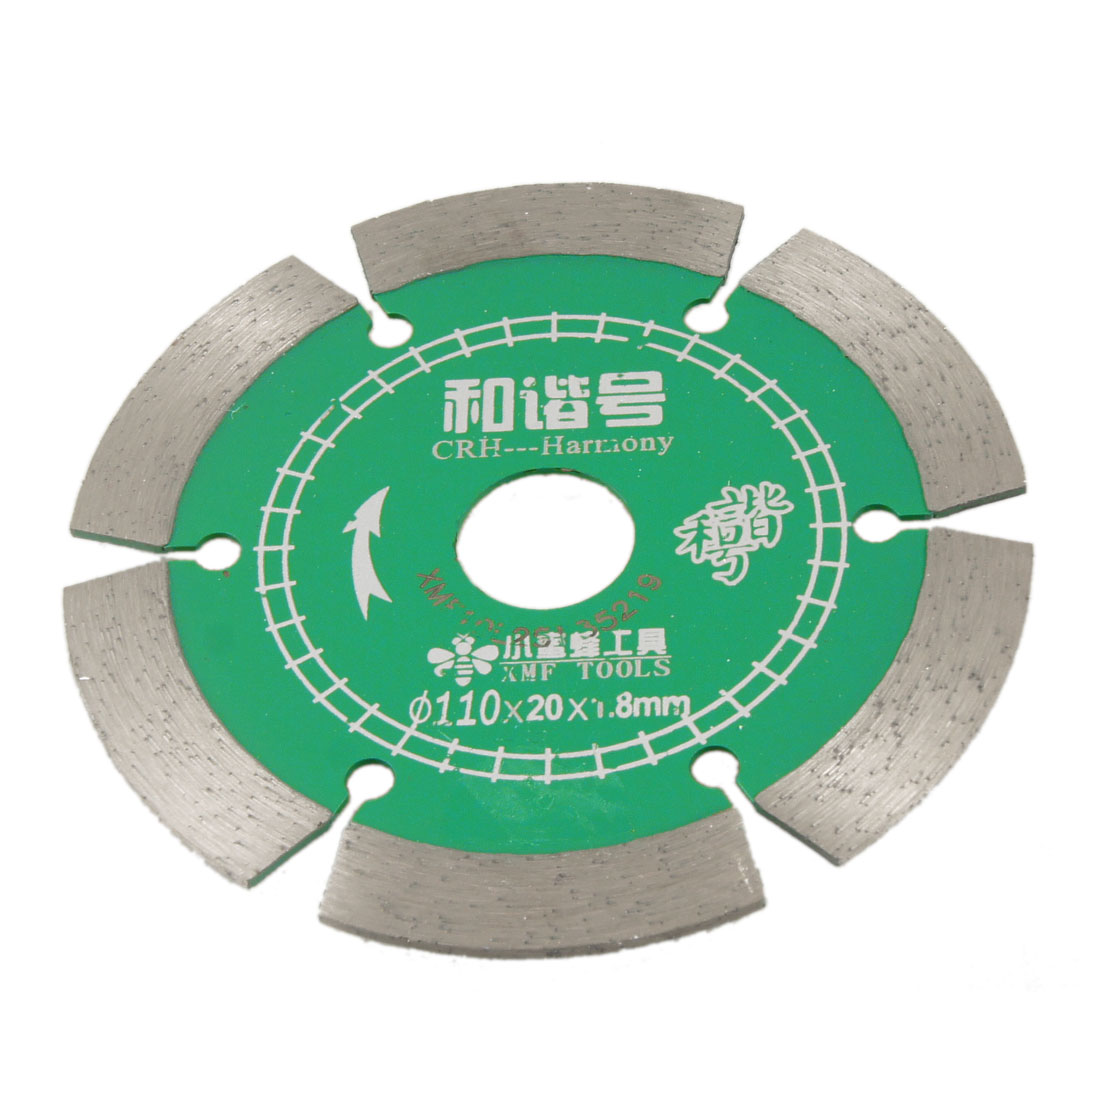 Tile Stone Cutting Wheel109mm x 20mm x 1.8mm Diamond Disc Saw Cutter